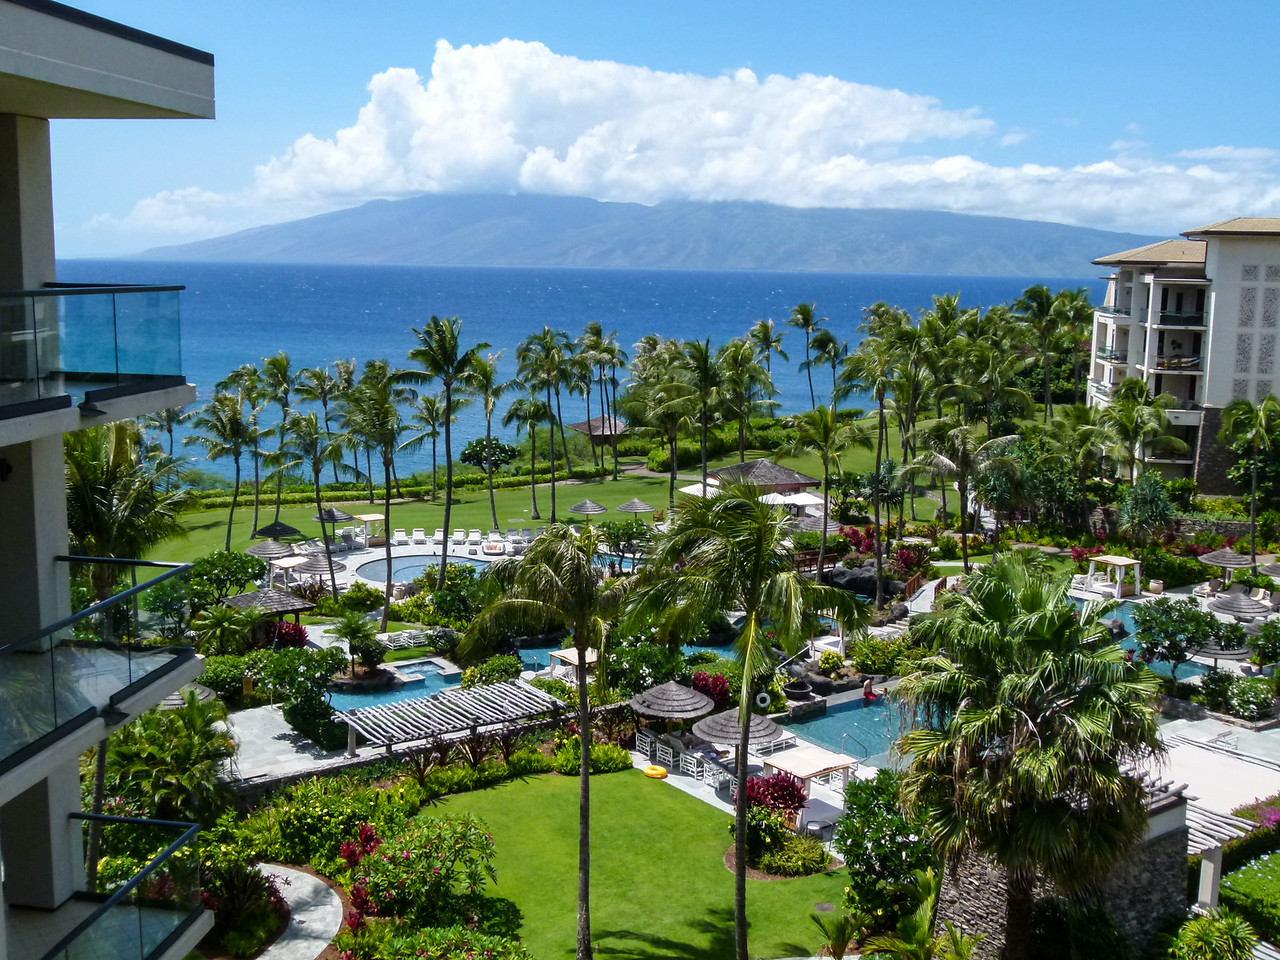 Enjoy the luxury travel experience at Montage Kapalua Bay on Maui.